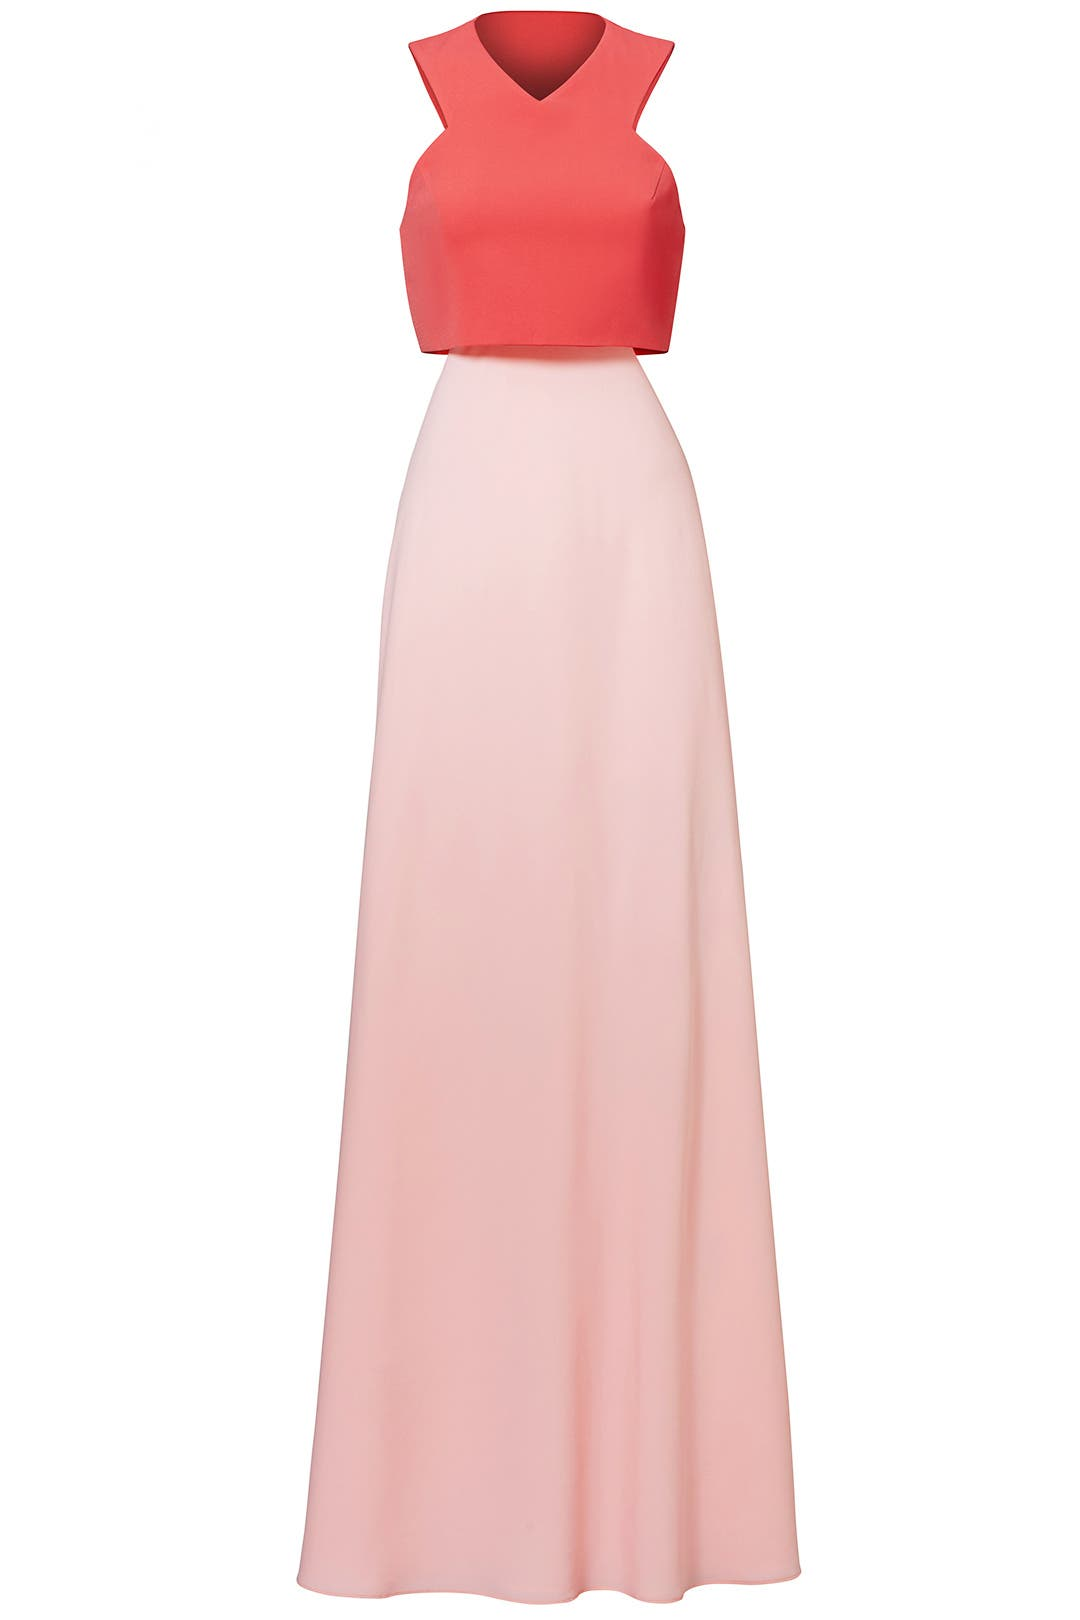 Pink Two-Toned Popover Gown by Jill Jill Stuart for $50 - $70 | Rent ...